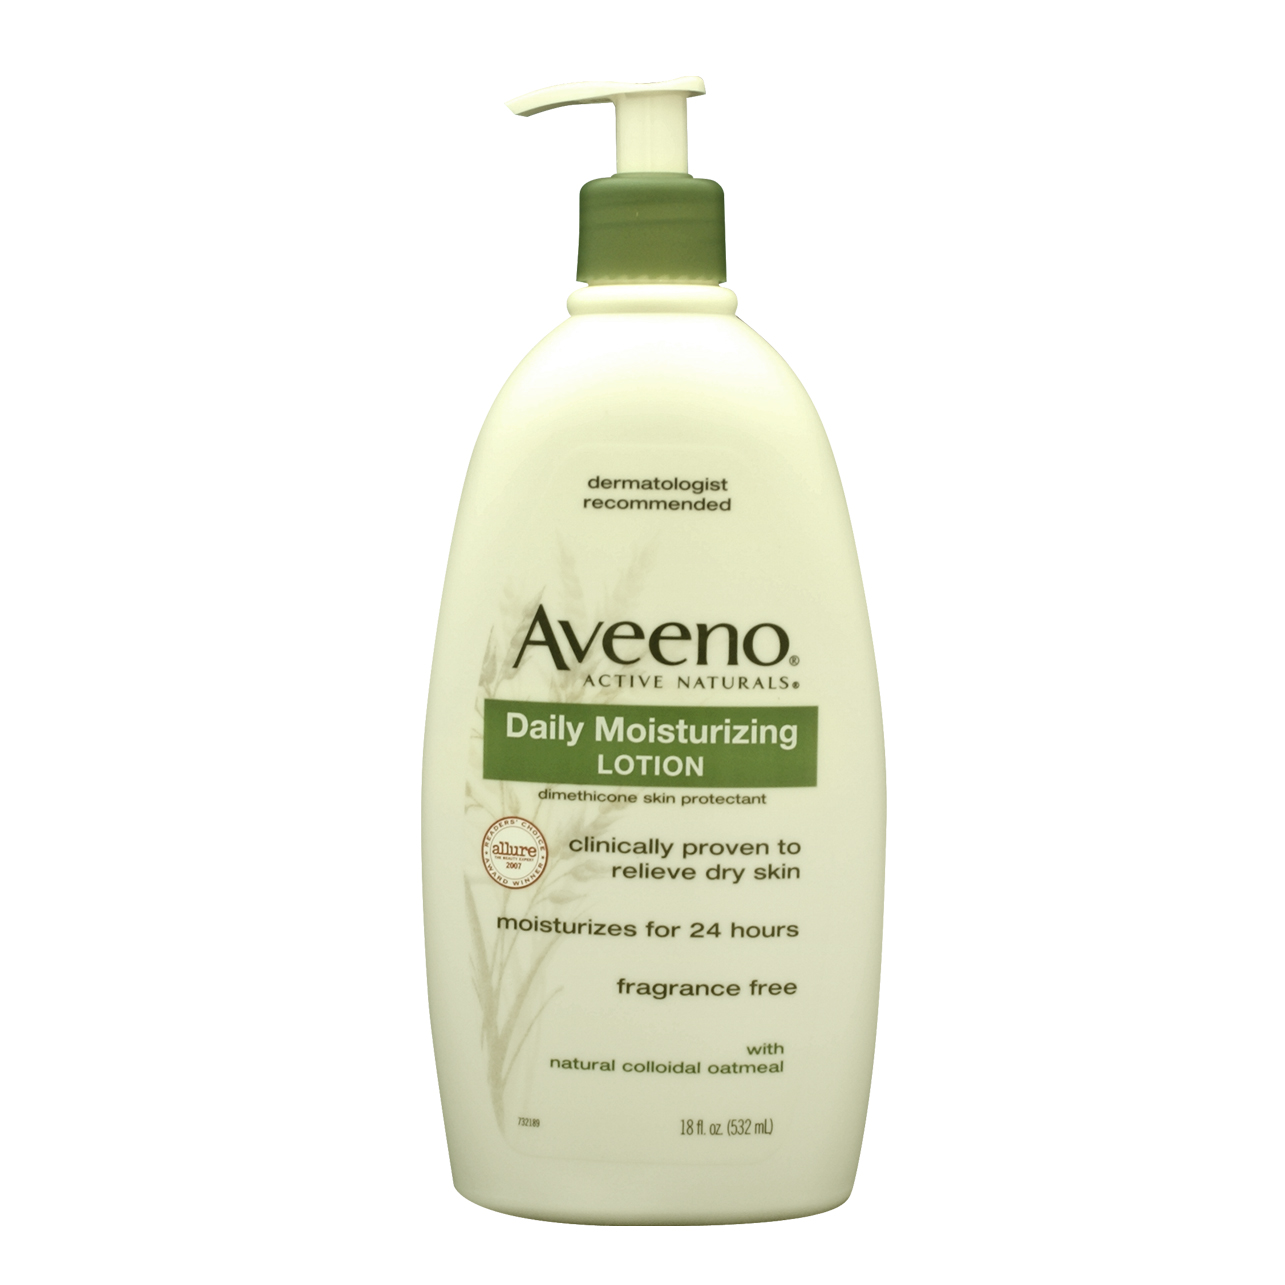 Lotion: HEALTH AND BEAUTY :: SKIN CARE :: Aveeno Daily